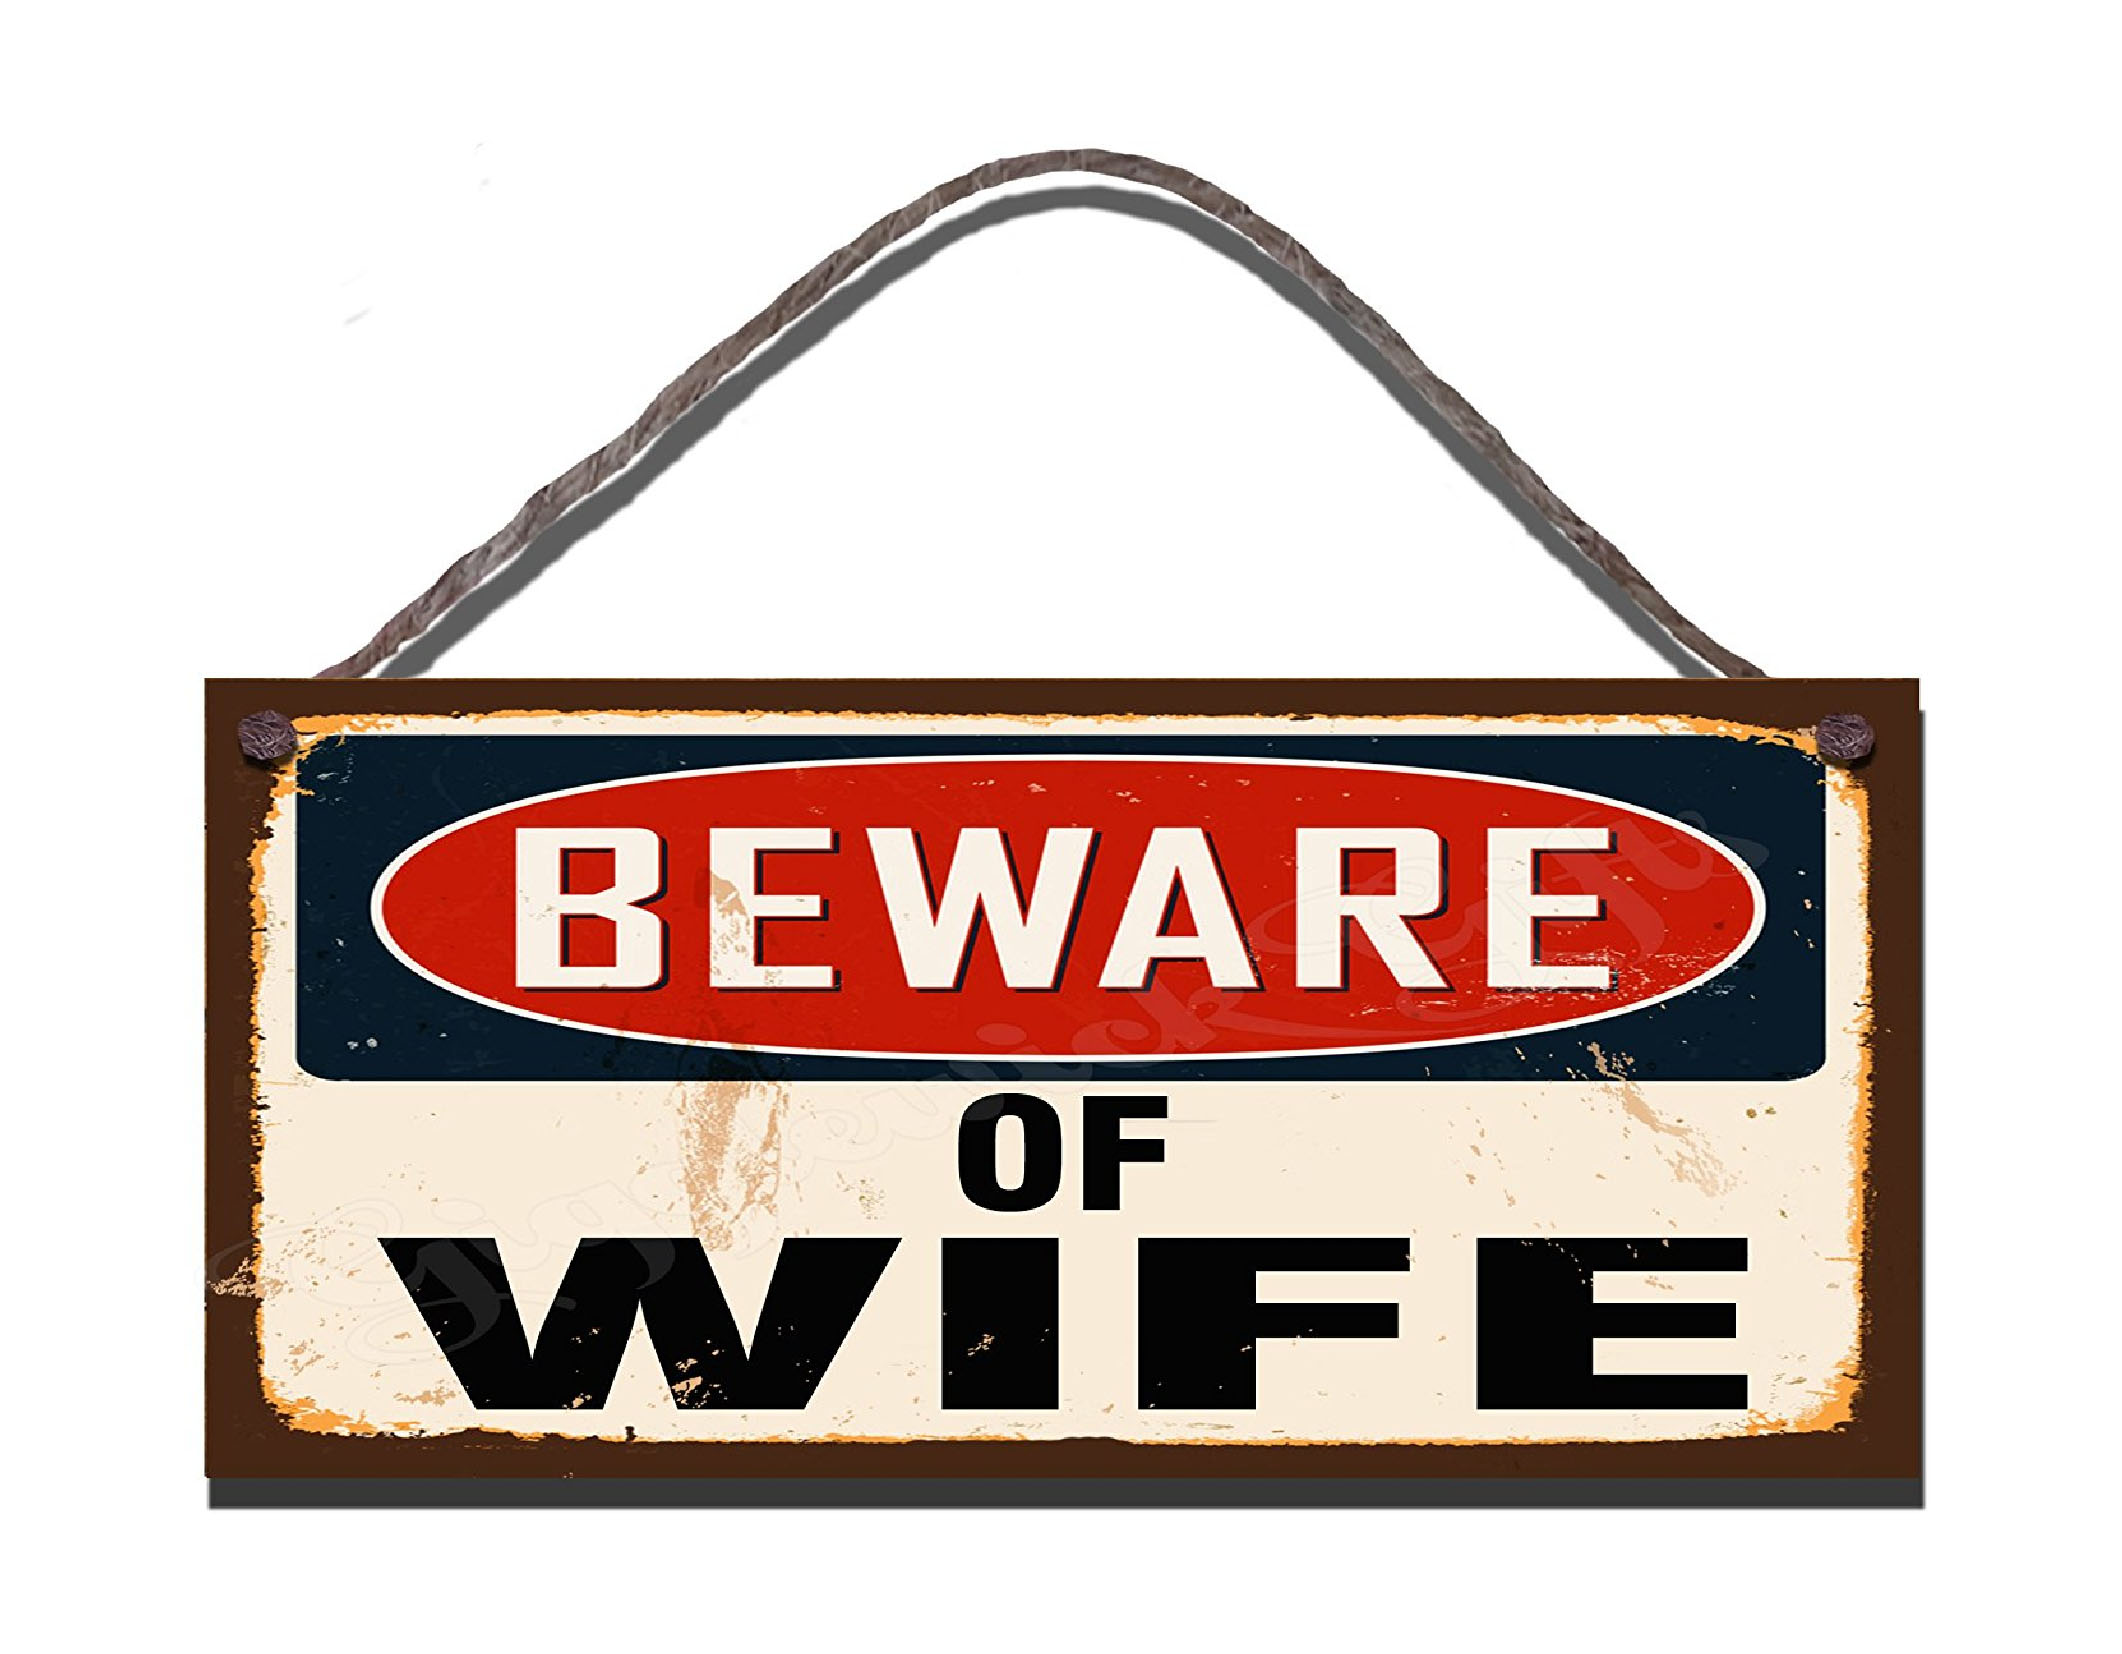 BEWARE OF WIFE S23